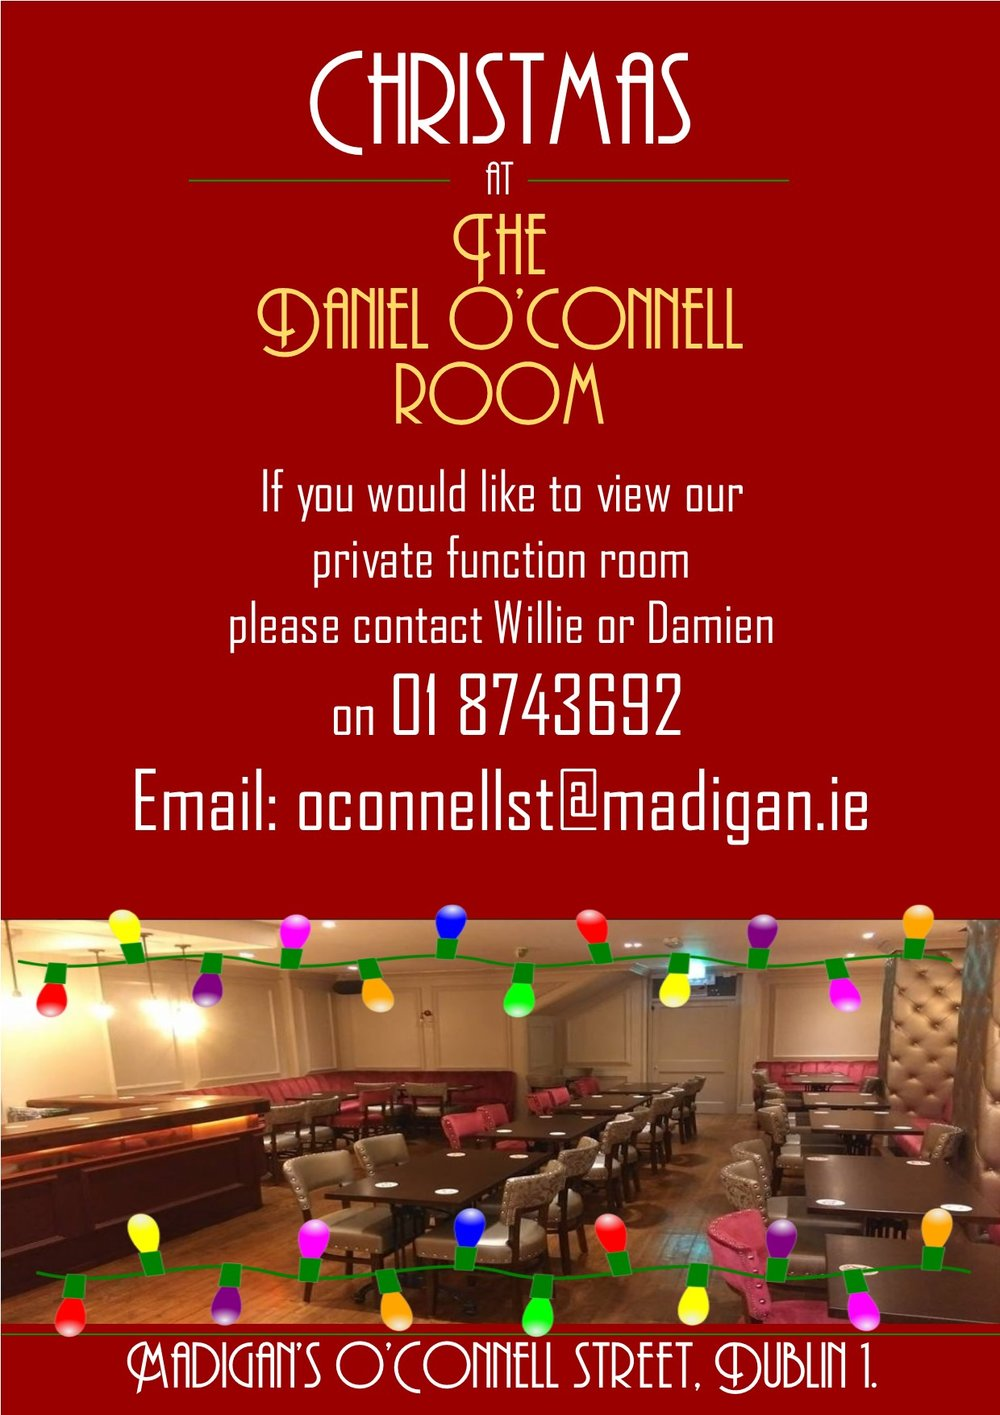 Christmas in The Daniel O'Connell Room page 2 2016.jpg